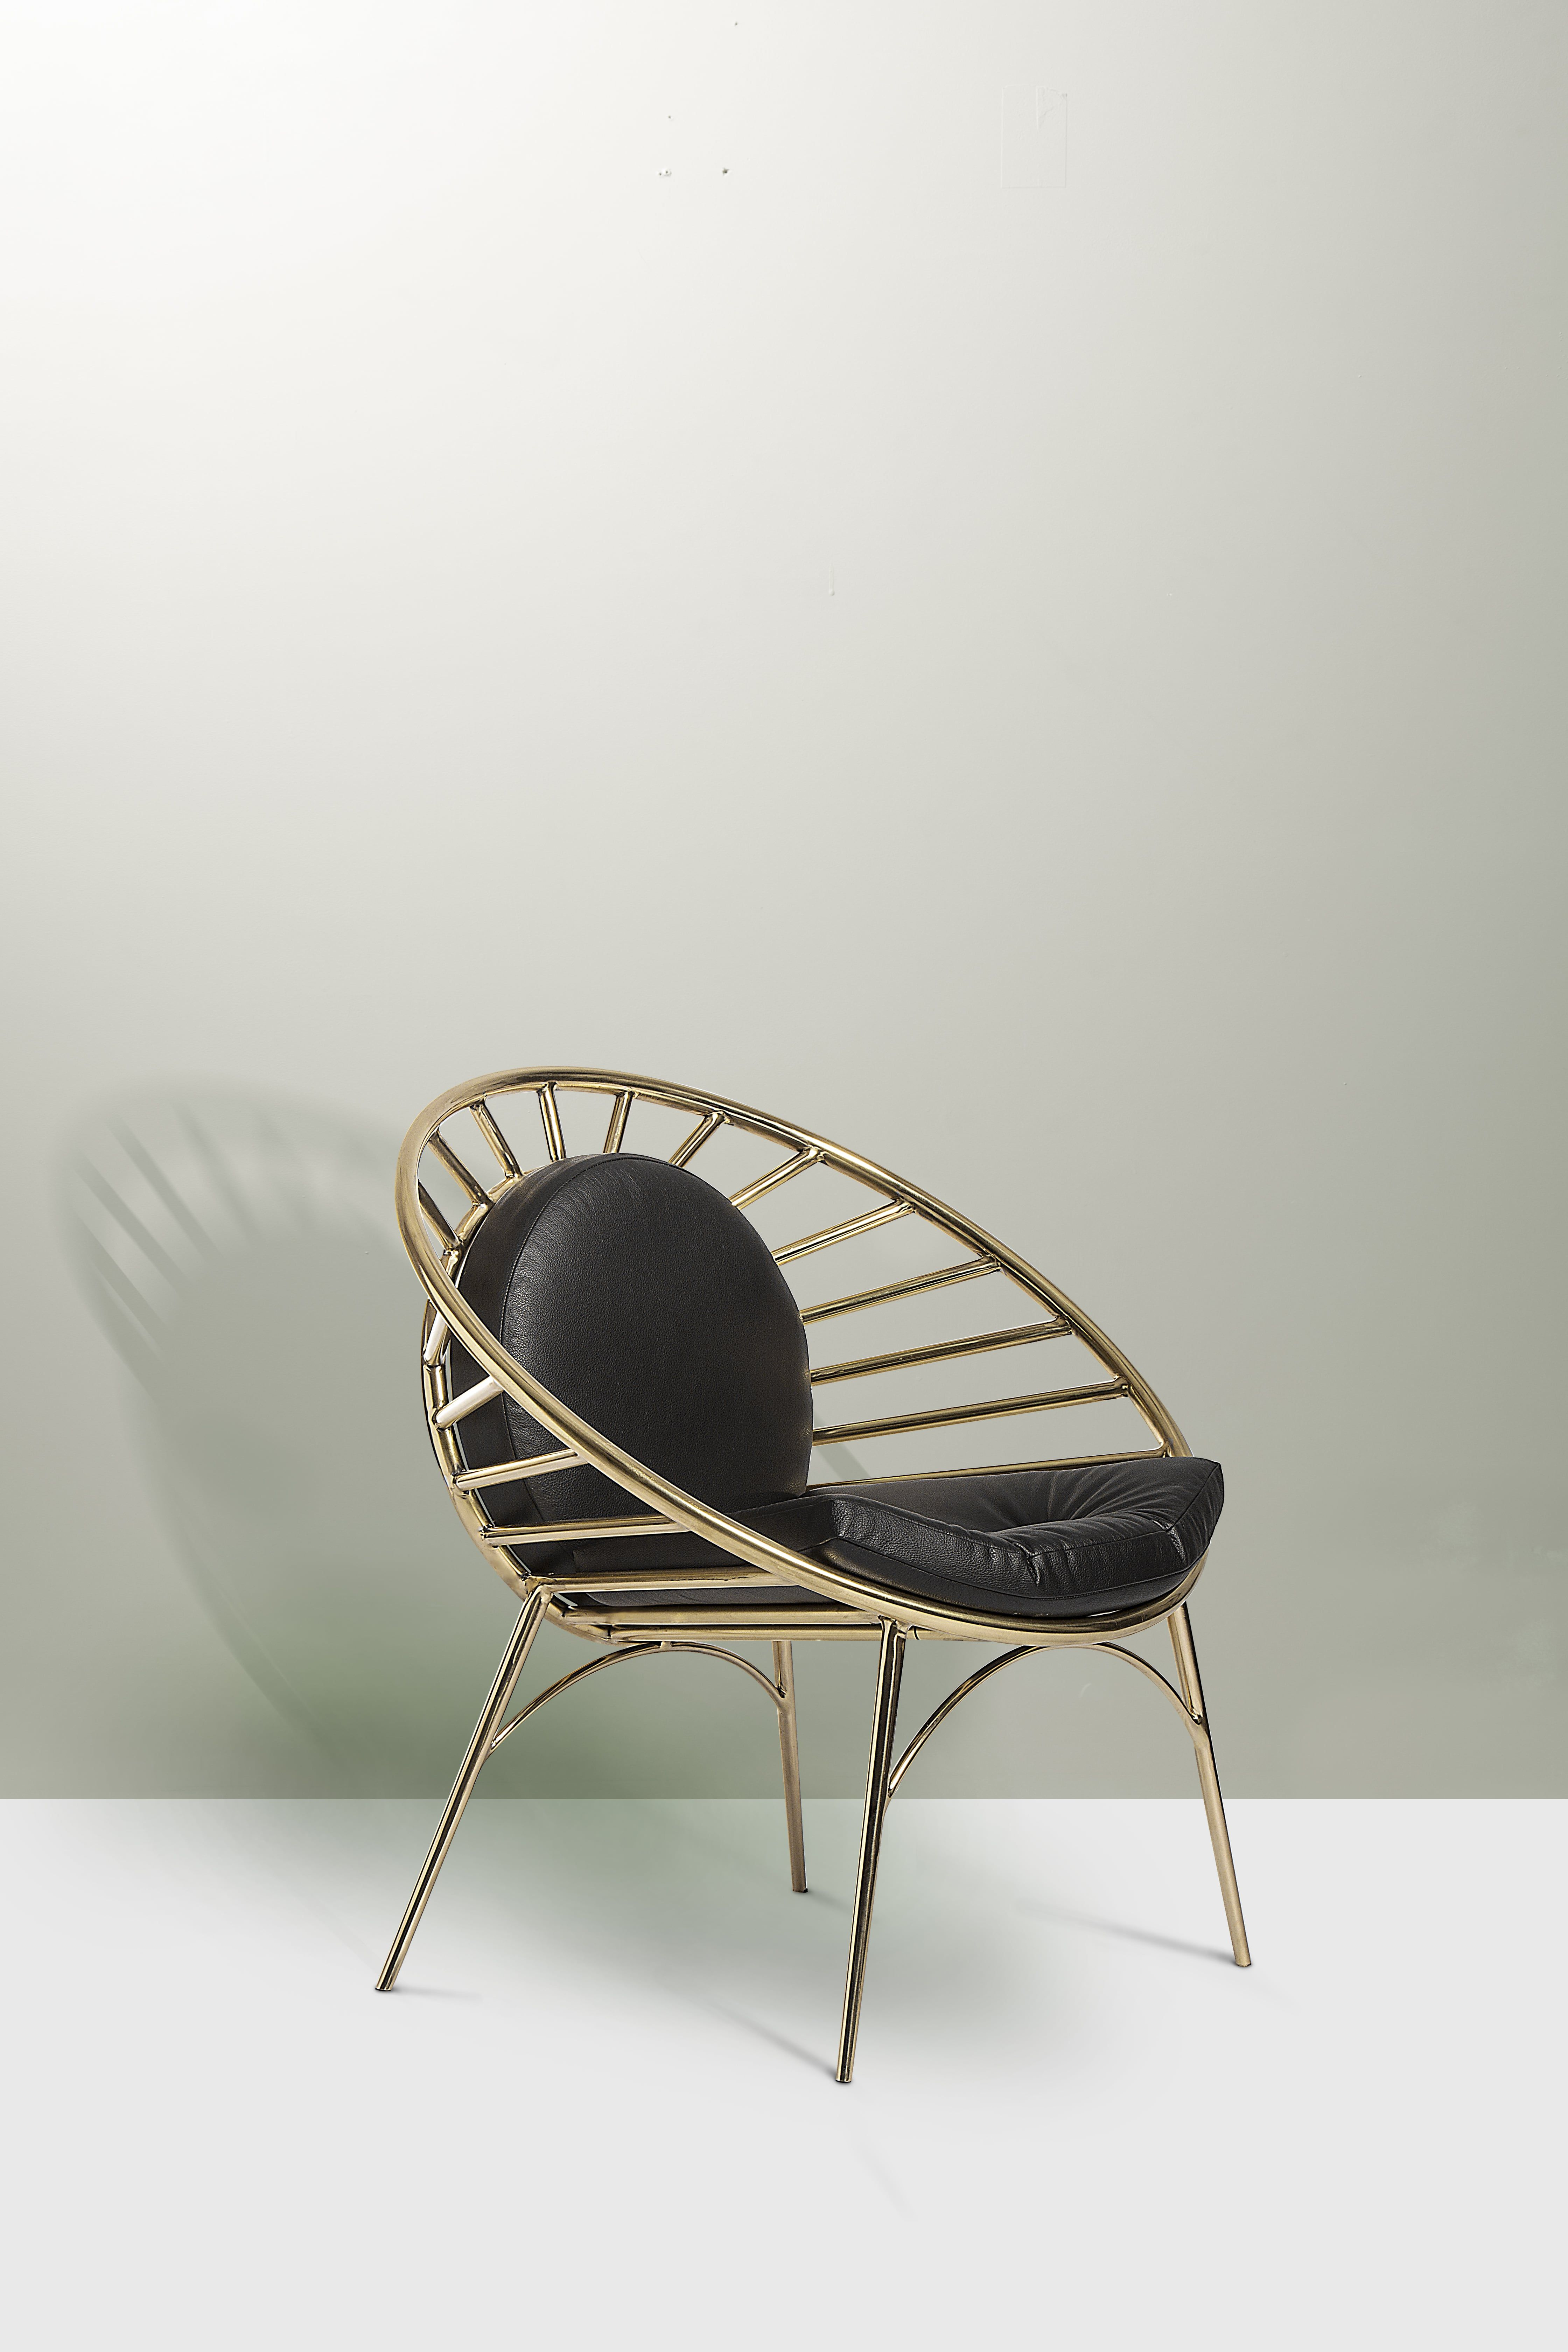 edgy furniture. Fine Furniture Reeves Is An Accent Chair That Could Easily Be Considered A Piece Of  Futuristic Furniture And Edgy Furniture R